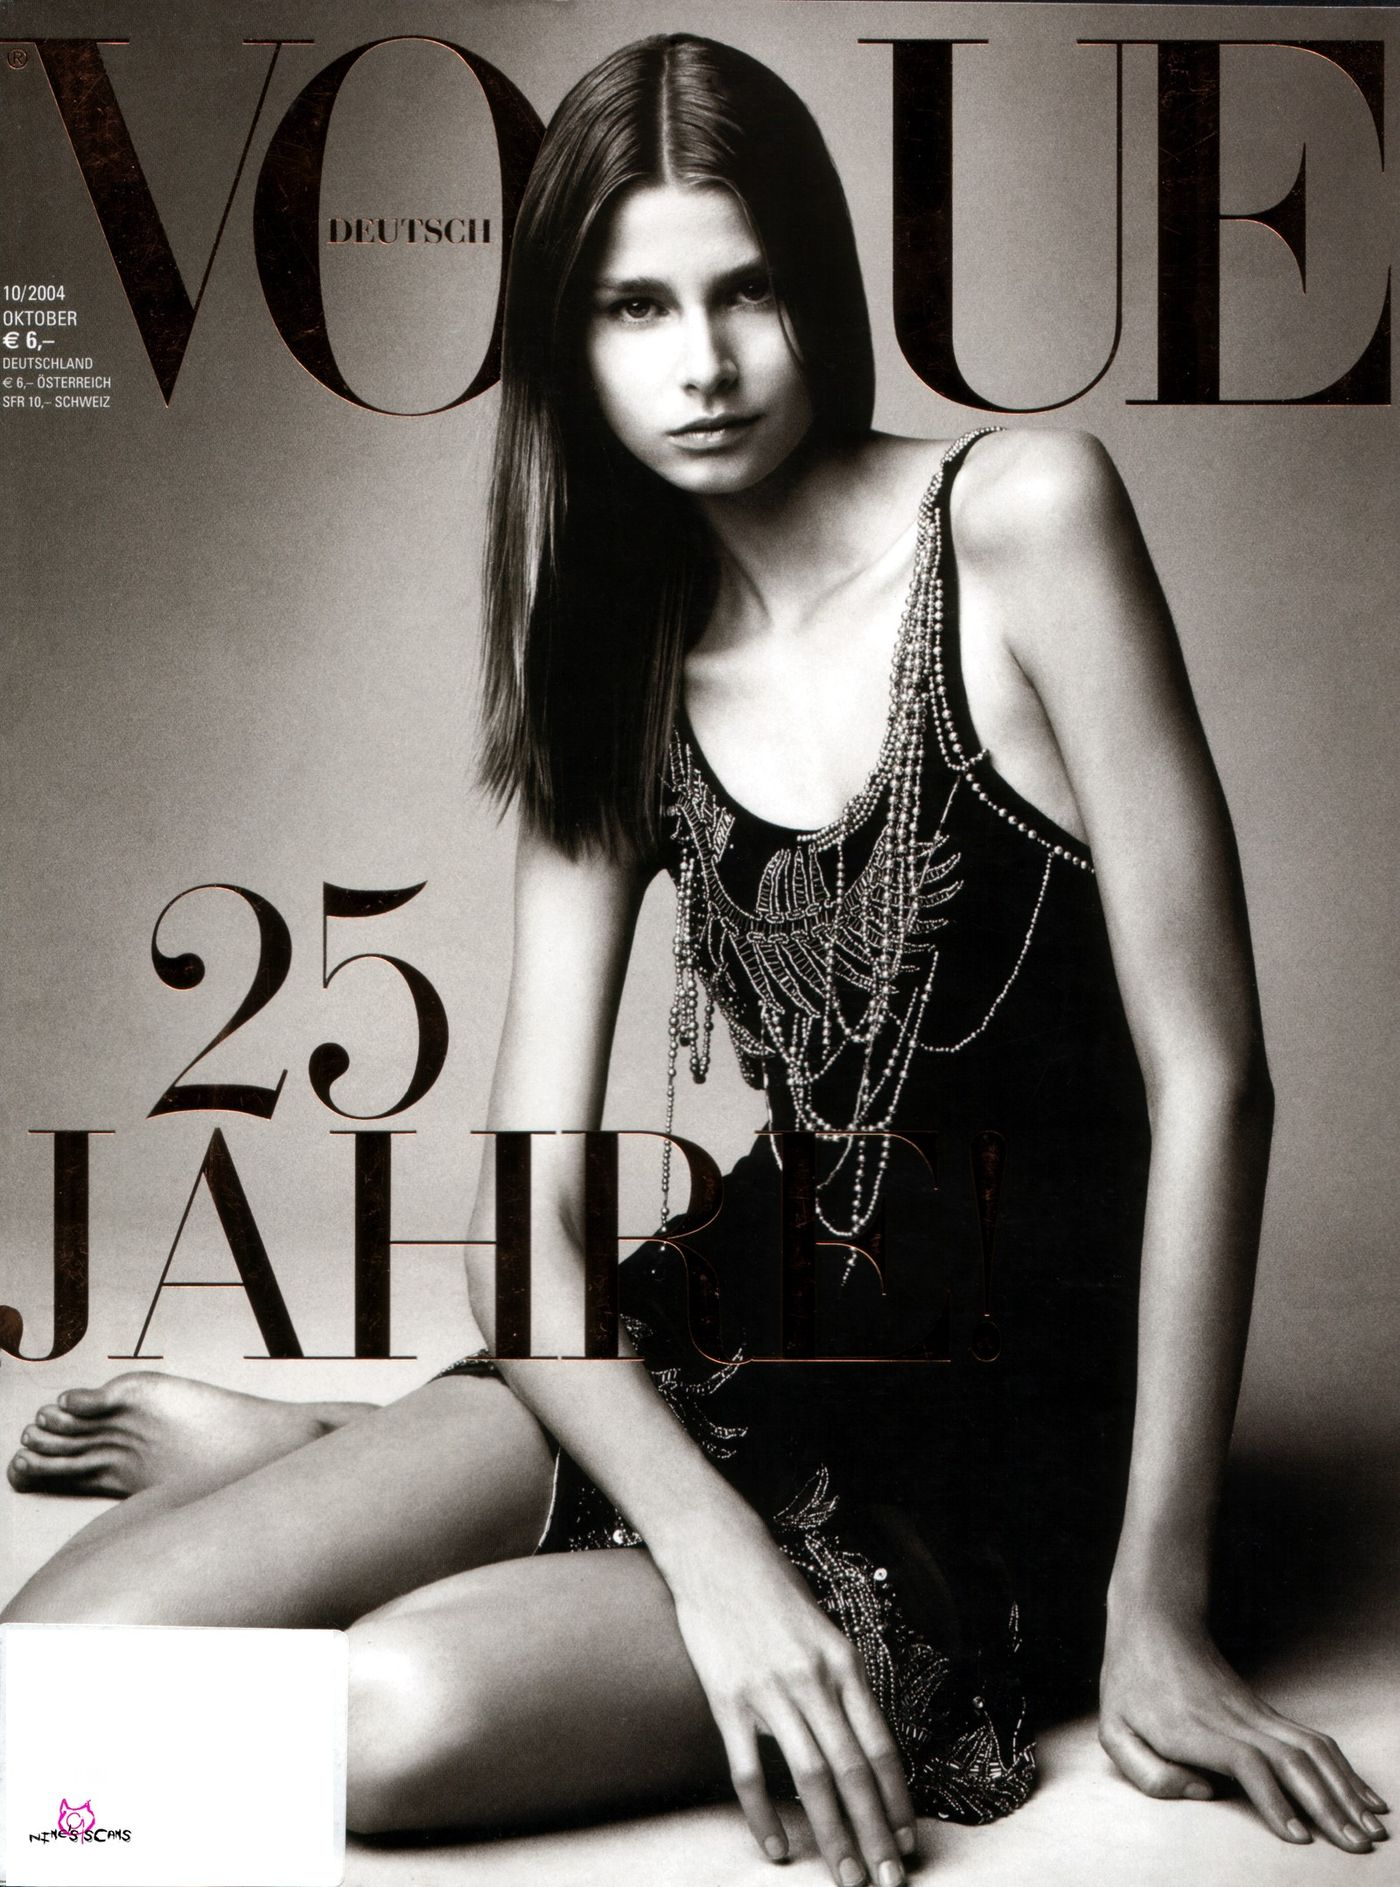 vogue-germany-2004-october- | vogue germany covers